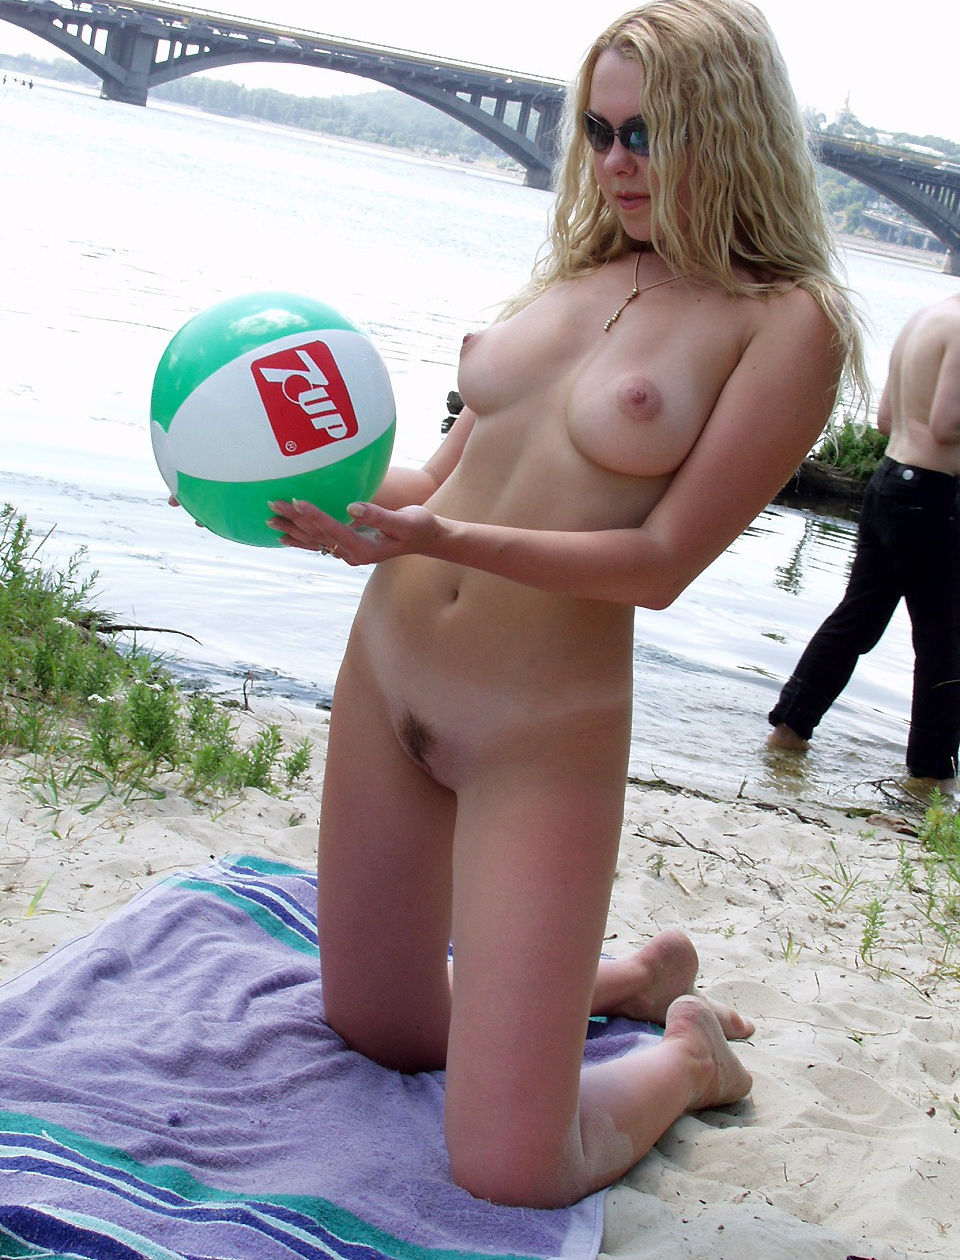 Blonde With Big Beautiful Boobs Plays With Ball Naked At -7536